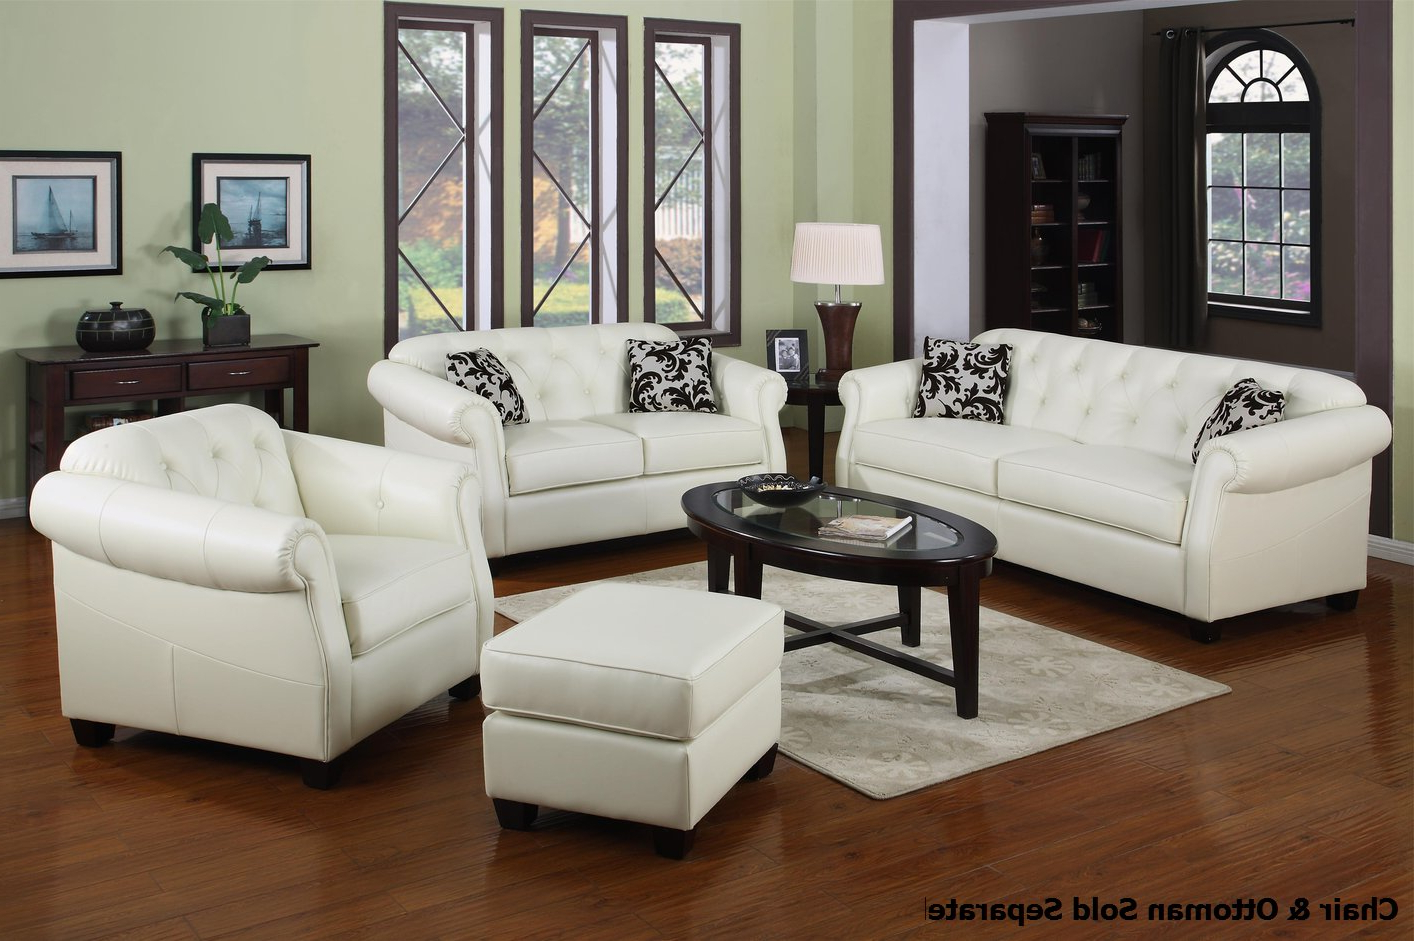 Sofa Loveseat And Chairs Regarding Trendy Kristyna White Leather Sofa And Loveseat Set – Steal A Sofa (View 17 of 20)